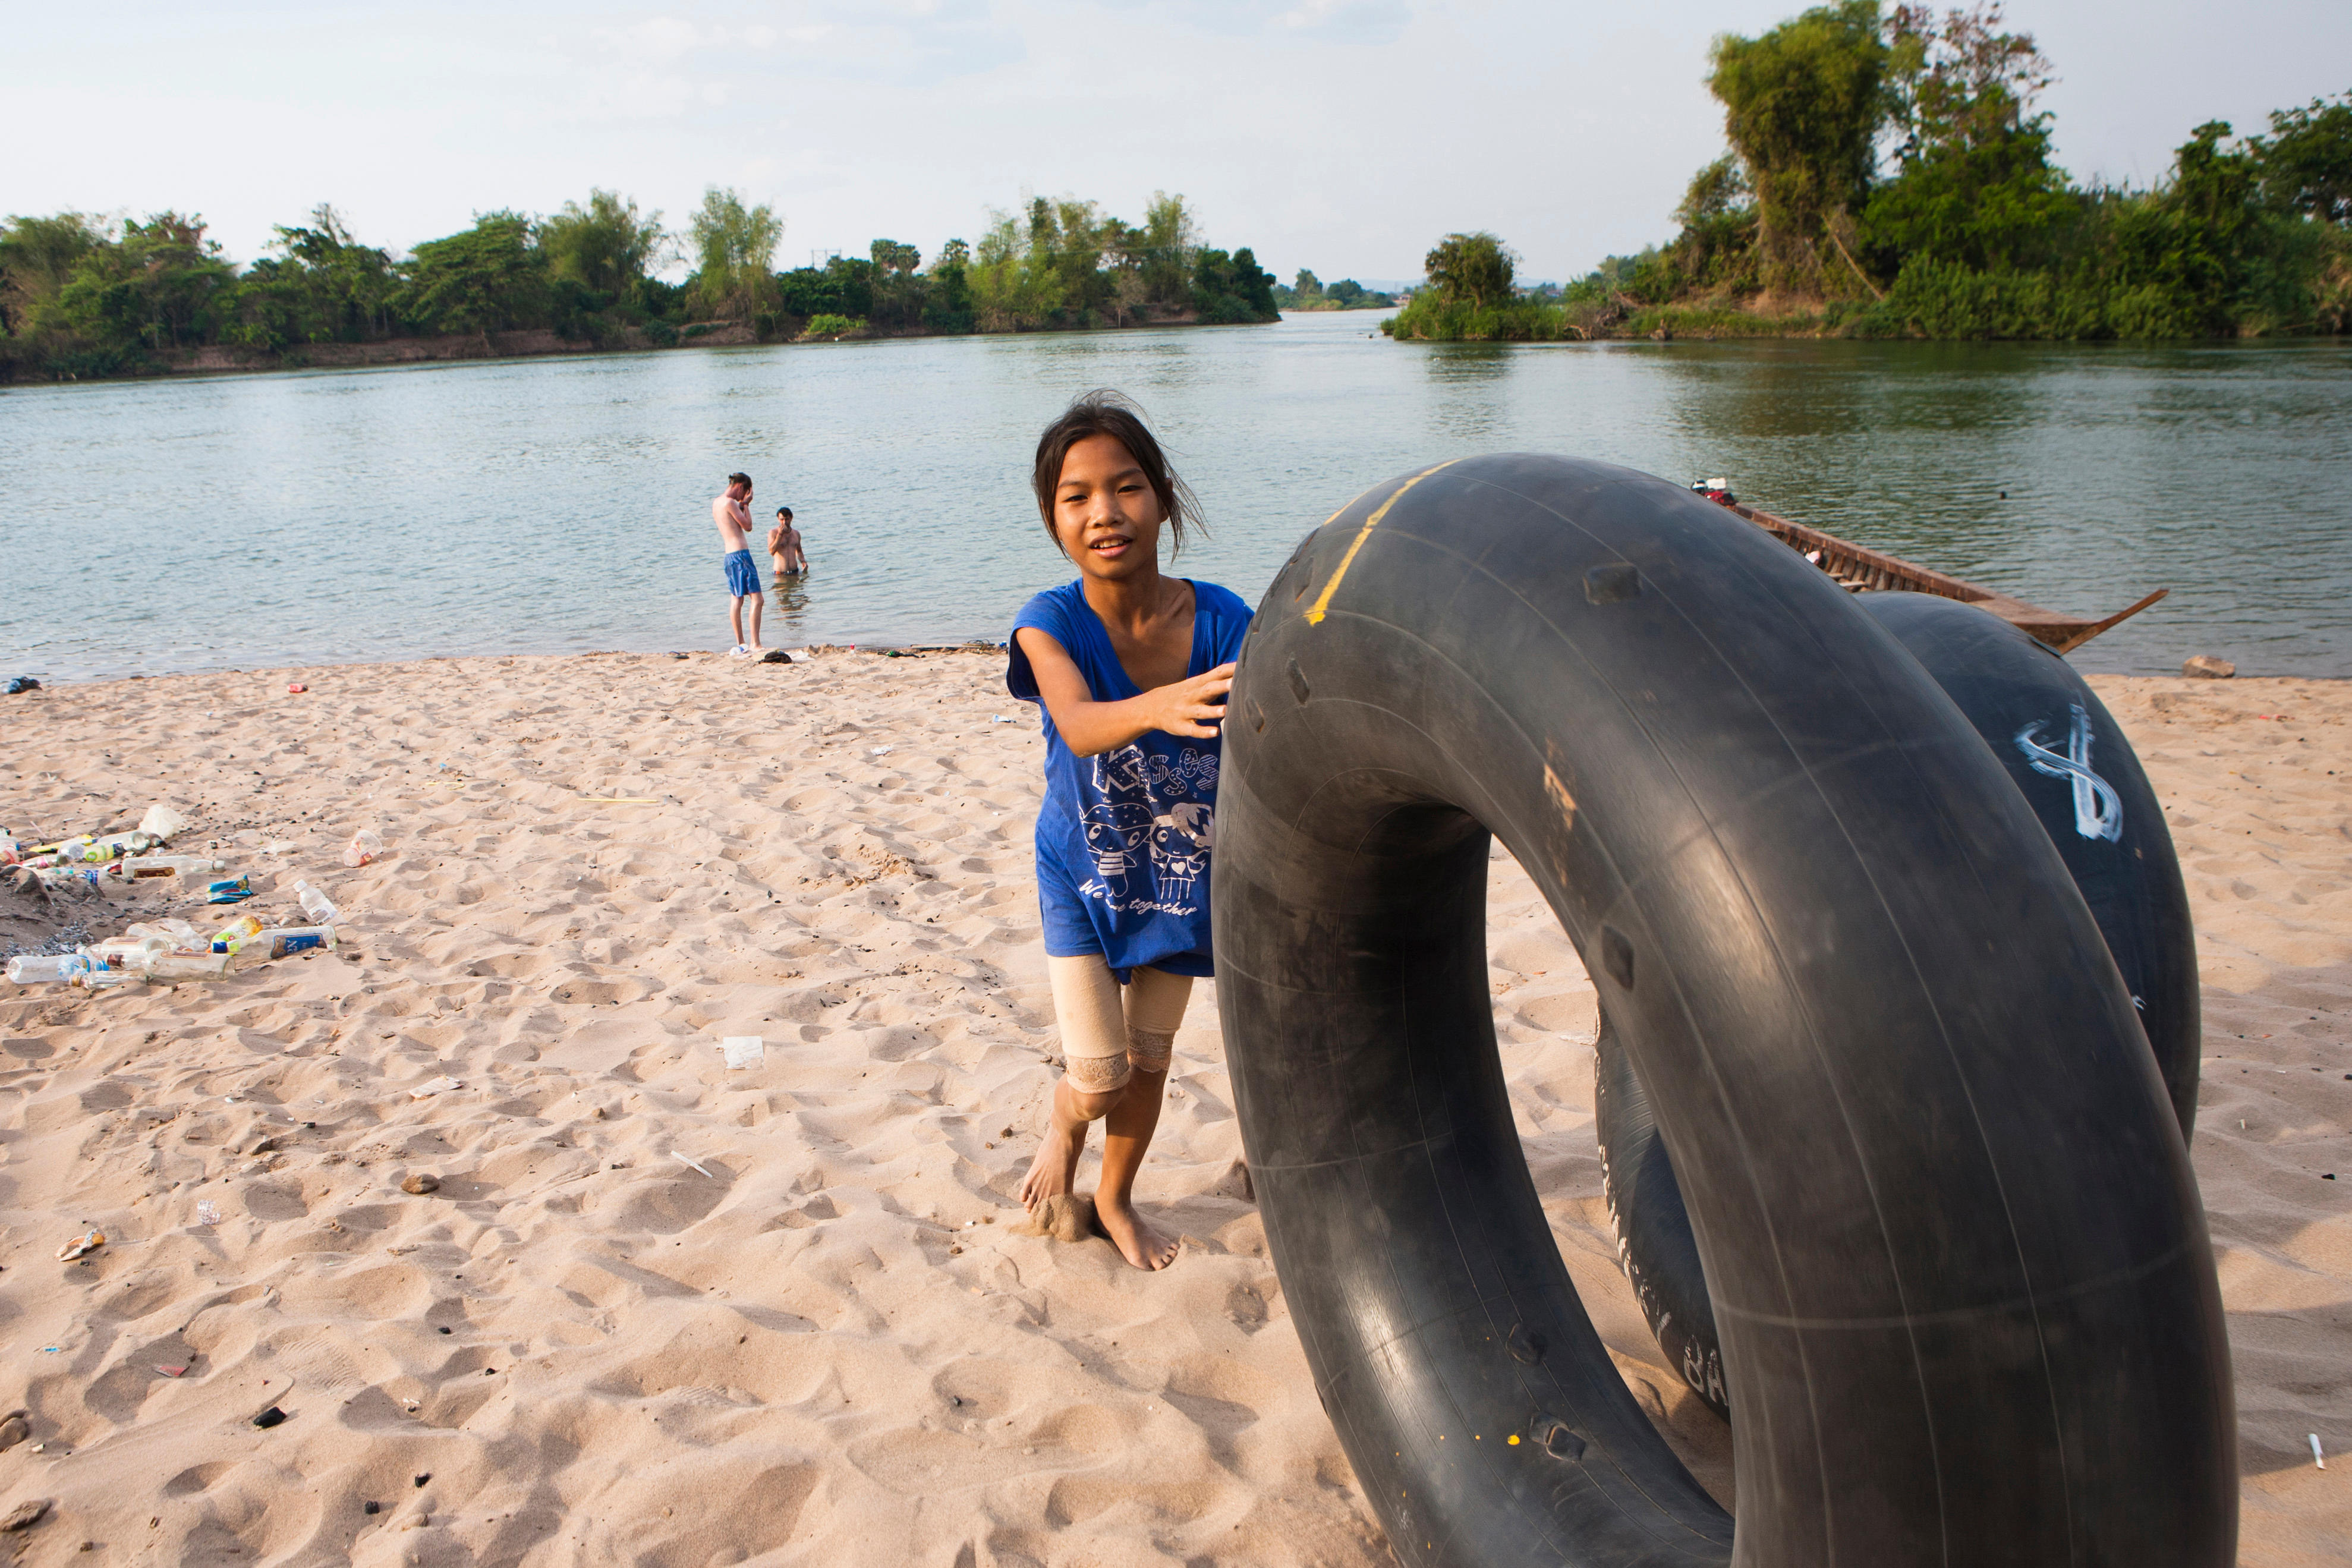 The island of Don Det is an upcoming backpacker stop on the Mekong River along the Cambodia and Laos border. Tubing around the islands is a popular activity and a great way to catch a sunset.